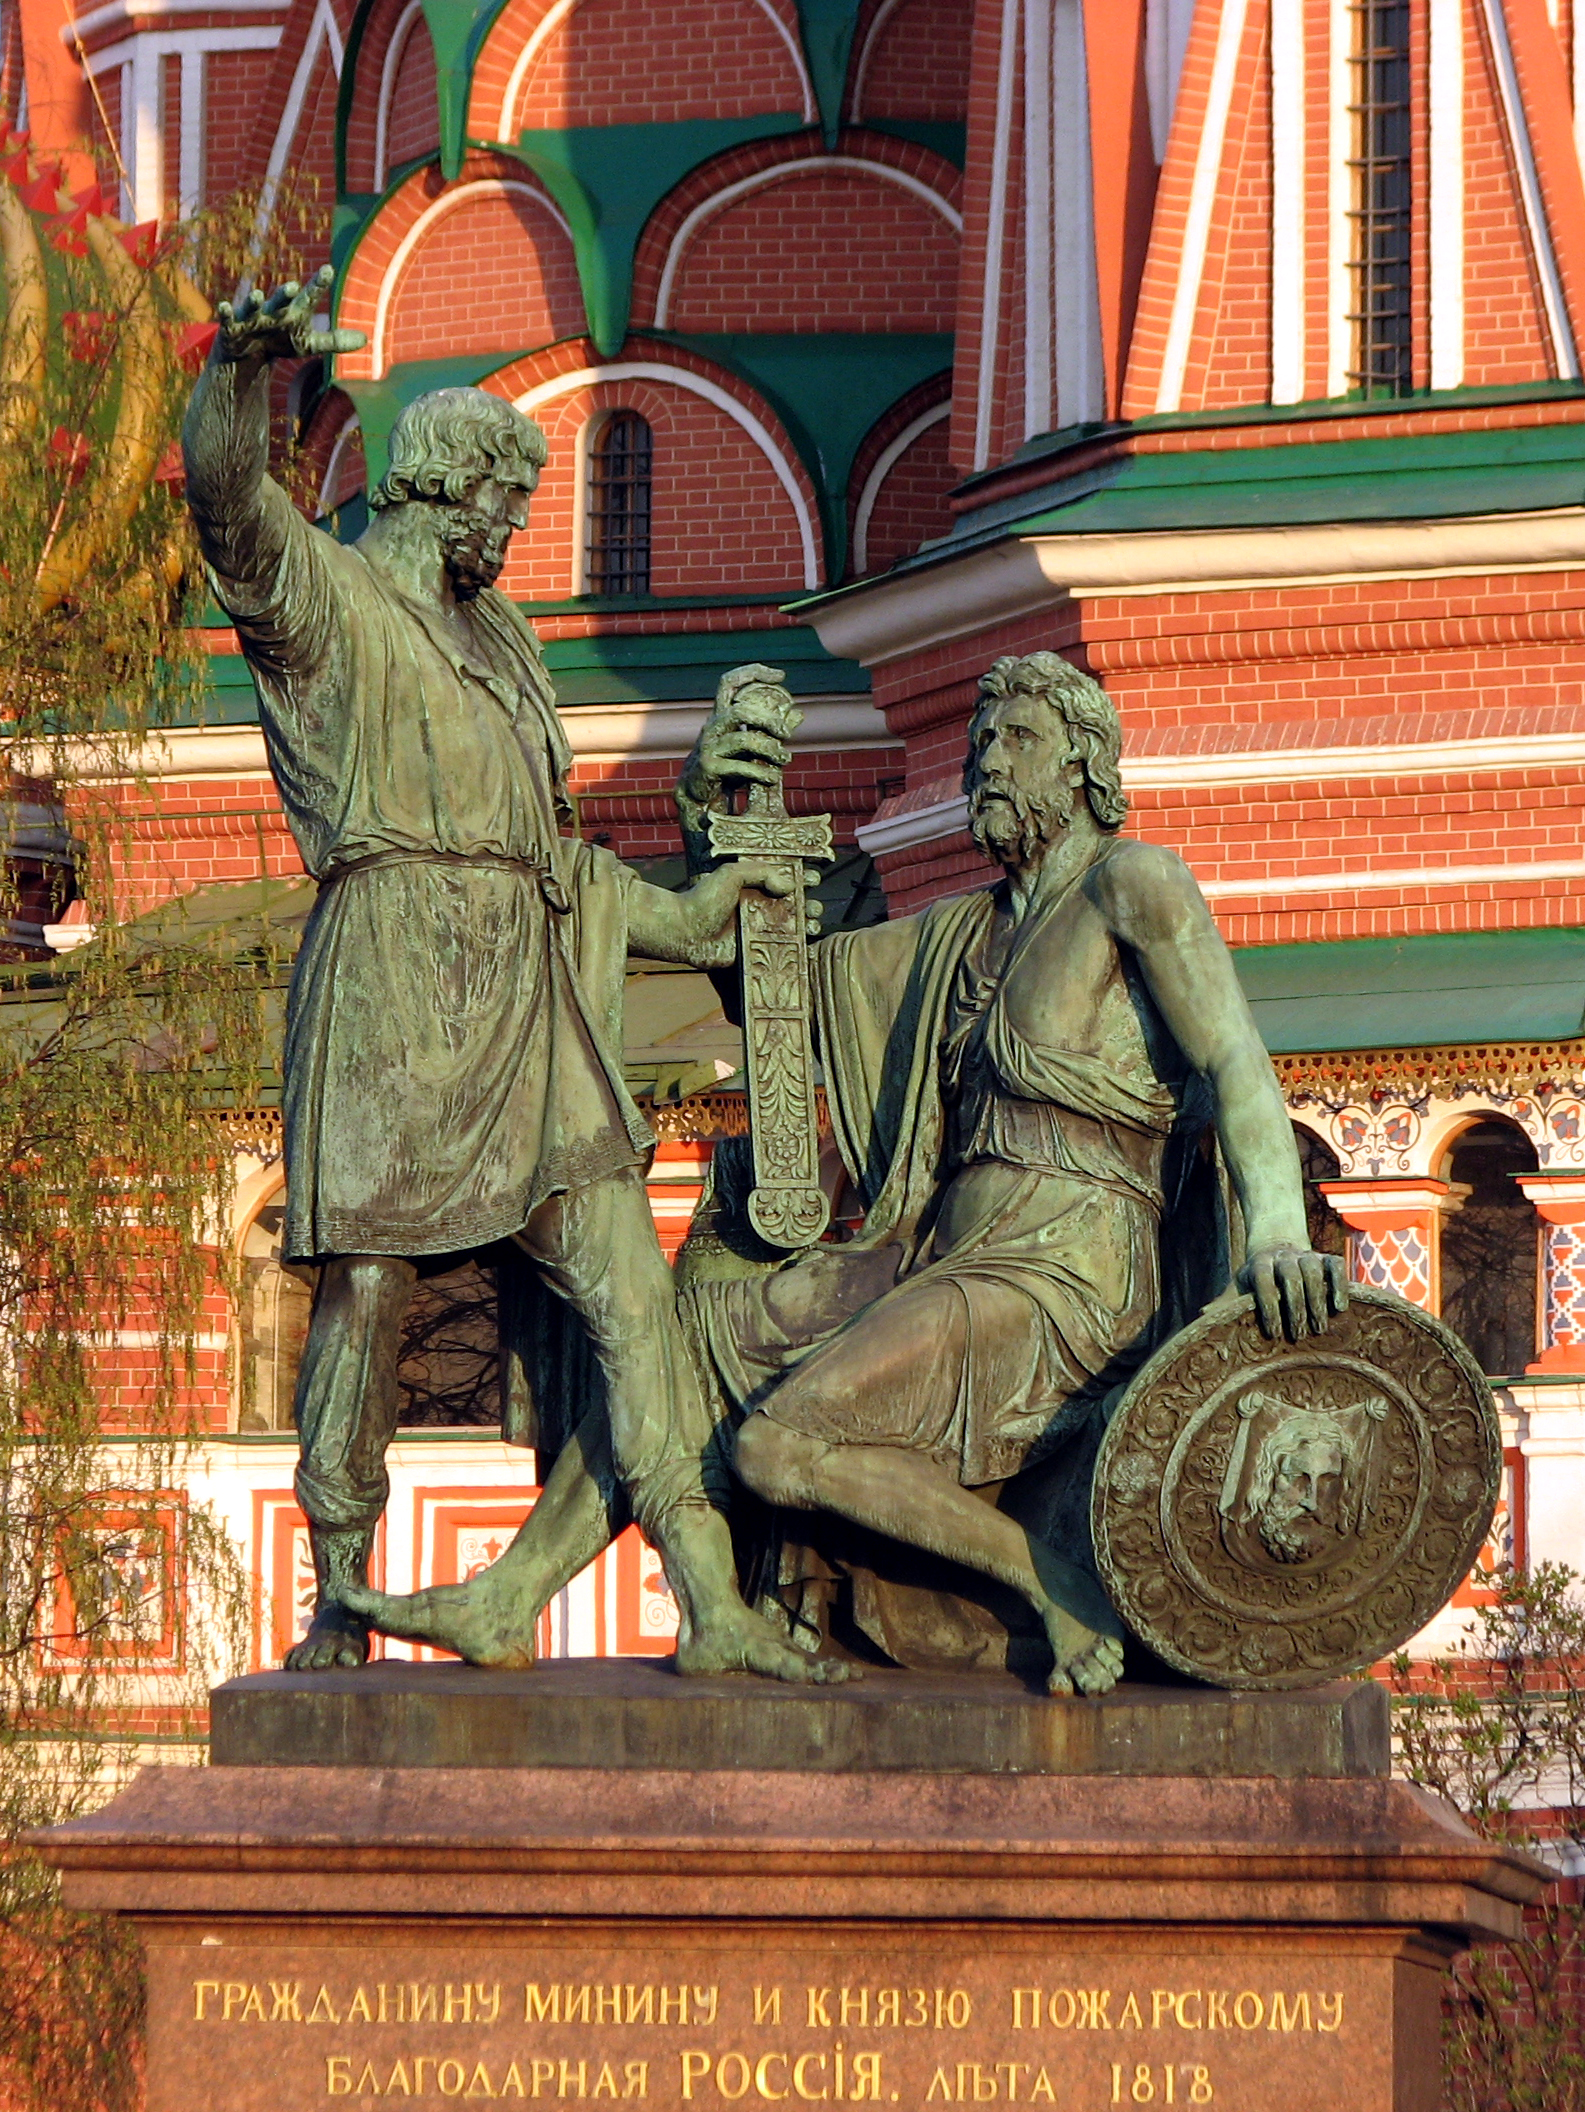 Pozharsky and Minin monument (1804–1816) in front of Saint Basil's Cathedral